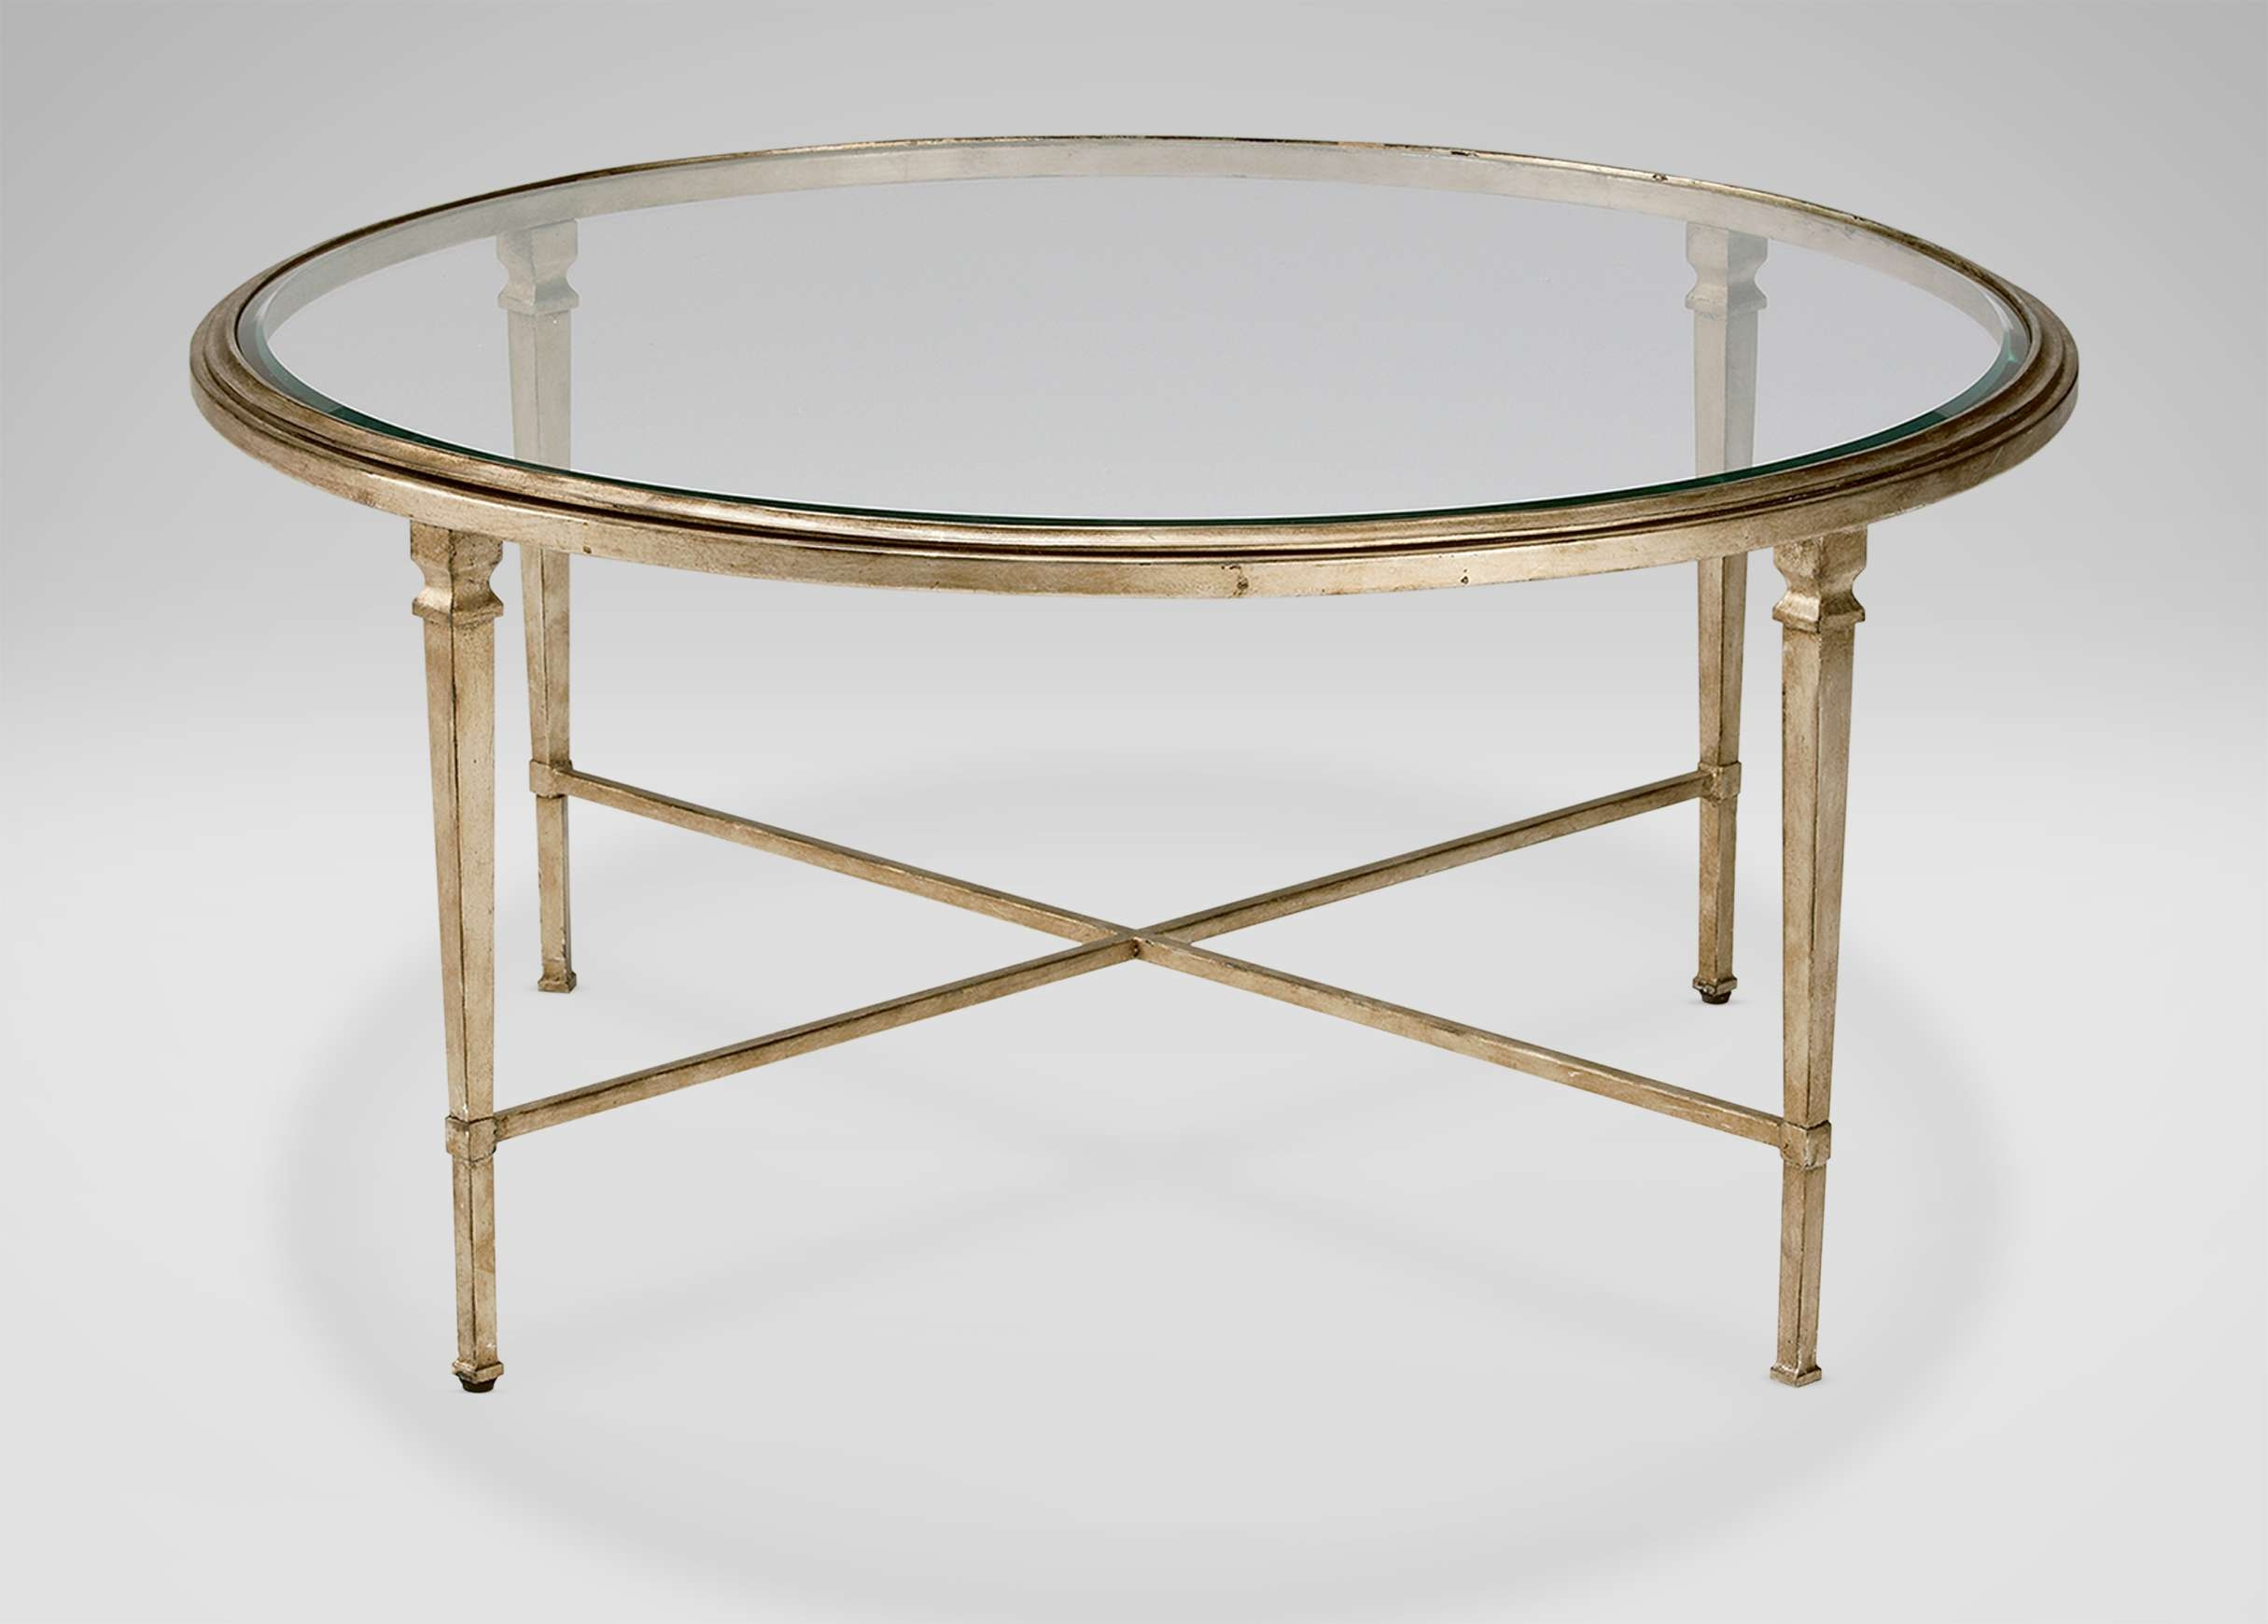 2017 Bronze Coffee Tables Pertaining To Coffee Table : Fabulous Contemporary Coffee Table / Glass / Brass (View 1 of 20)